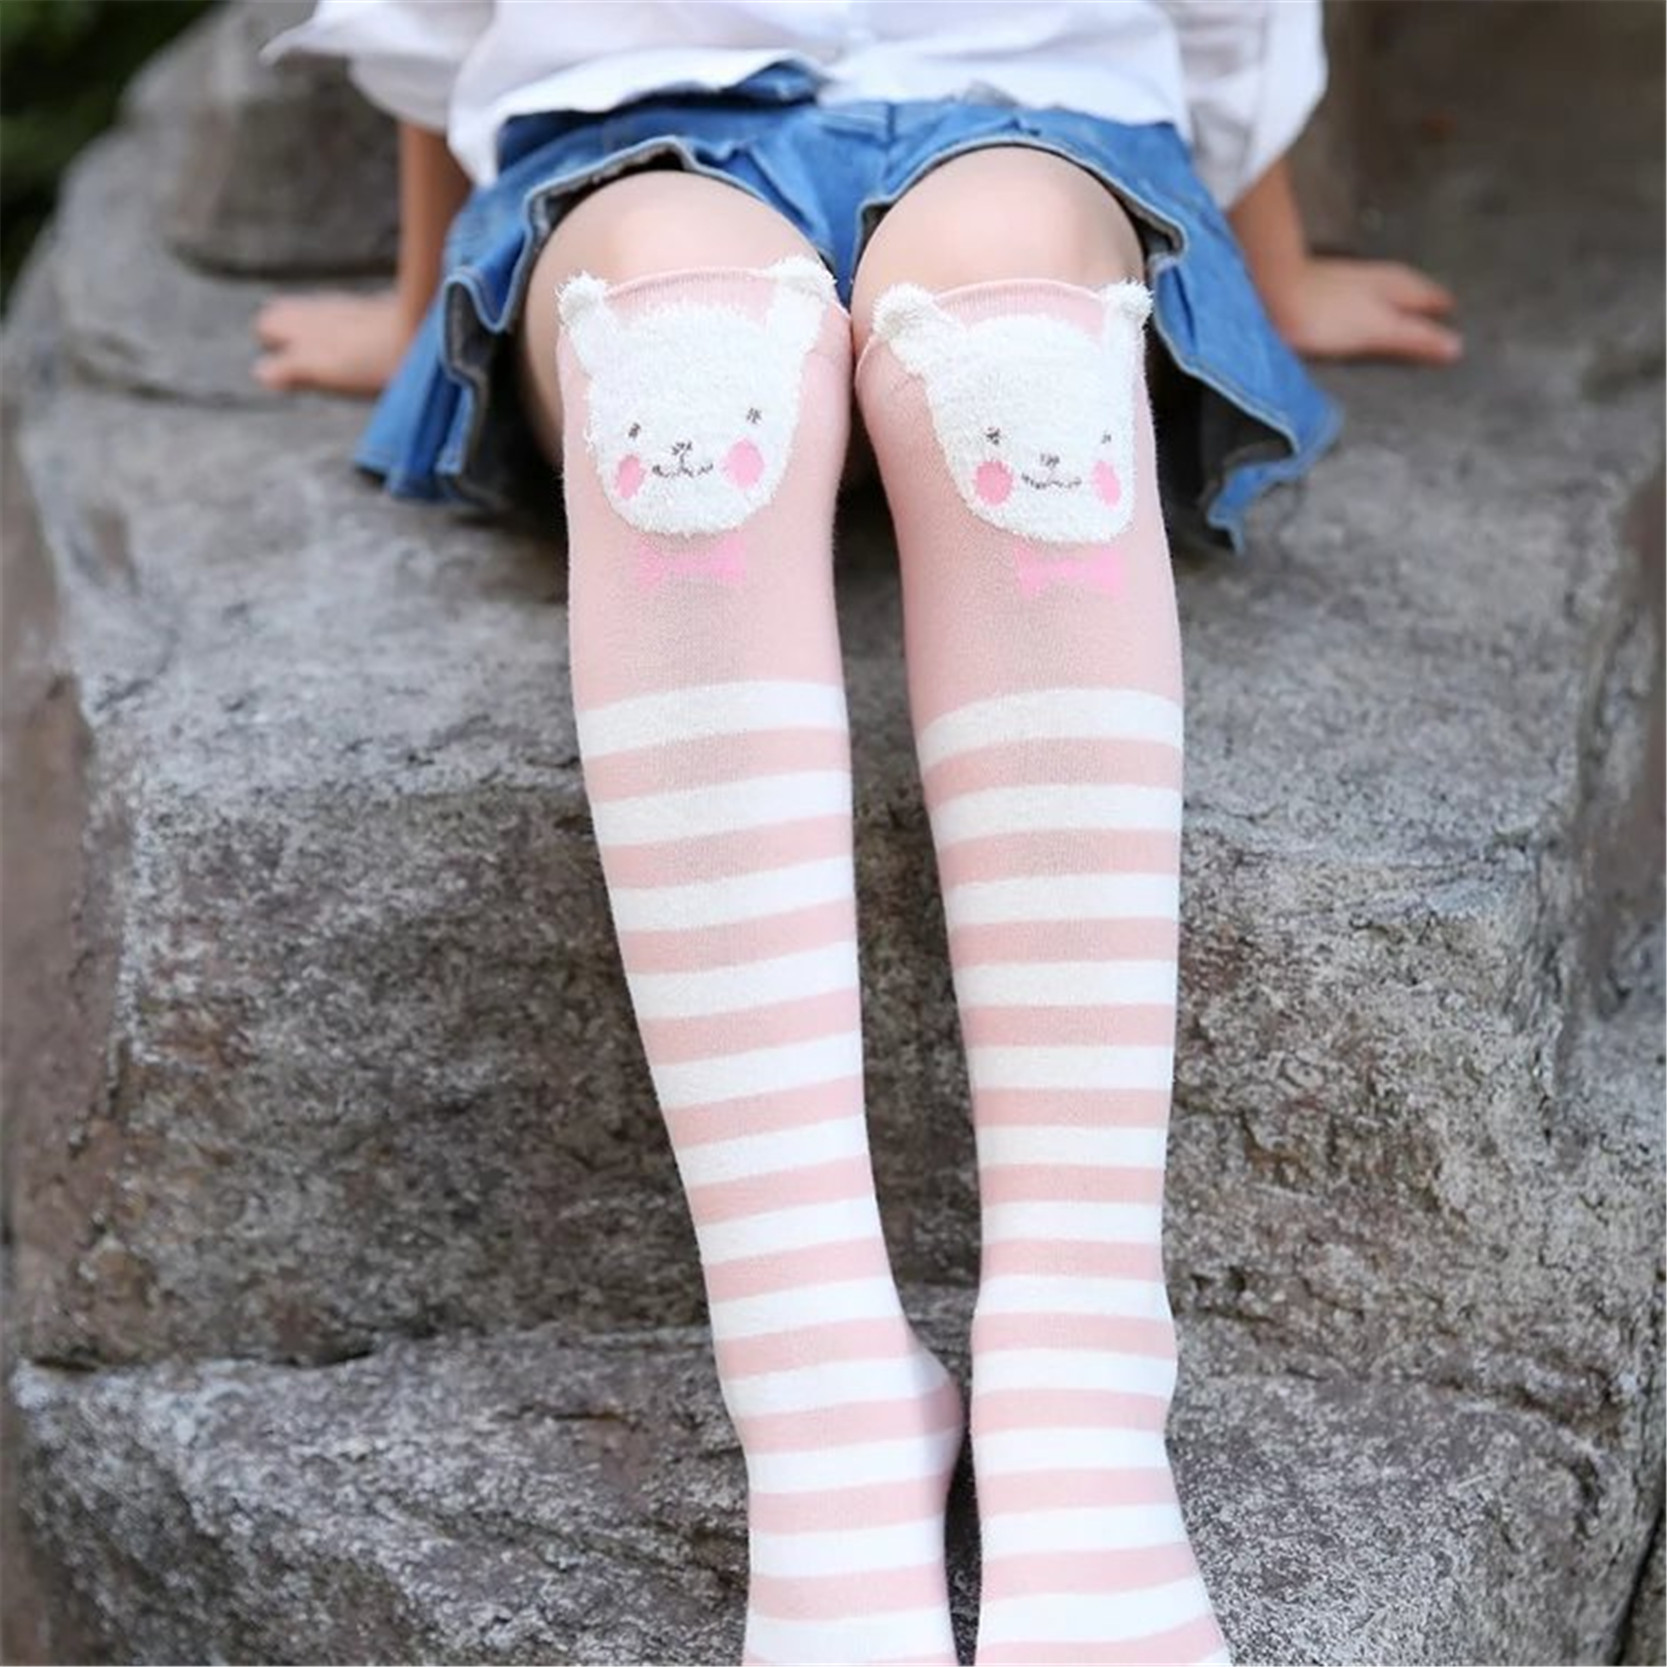 Cotton Knee High Socks For Kids Girl Print Cute Panda Cat Fox Cartoon Long Socks Children Winter Boot Socks Striped цена